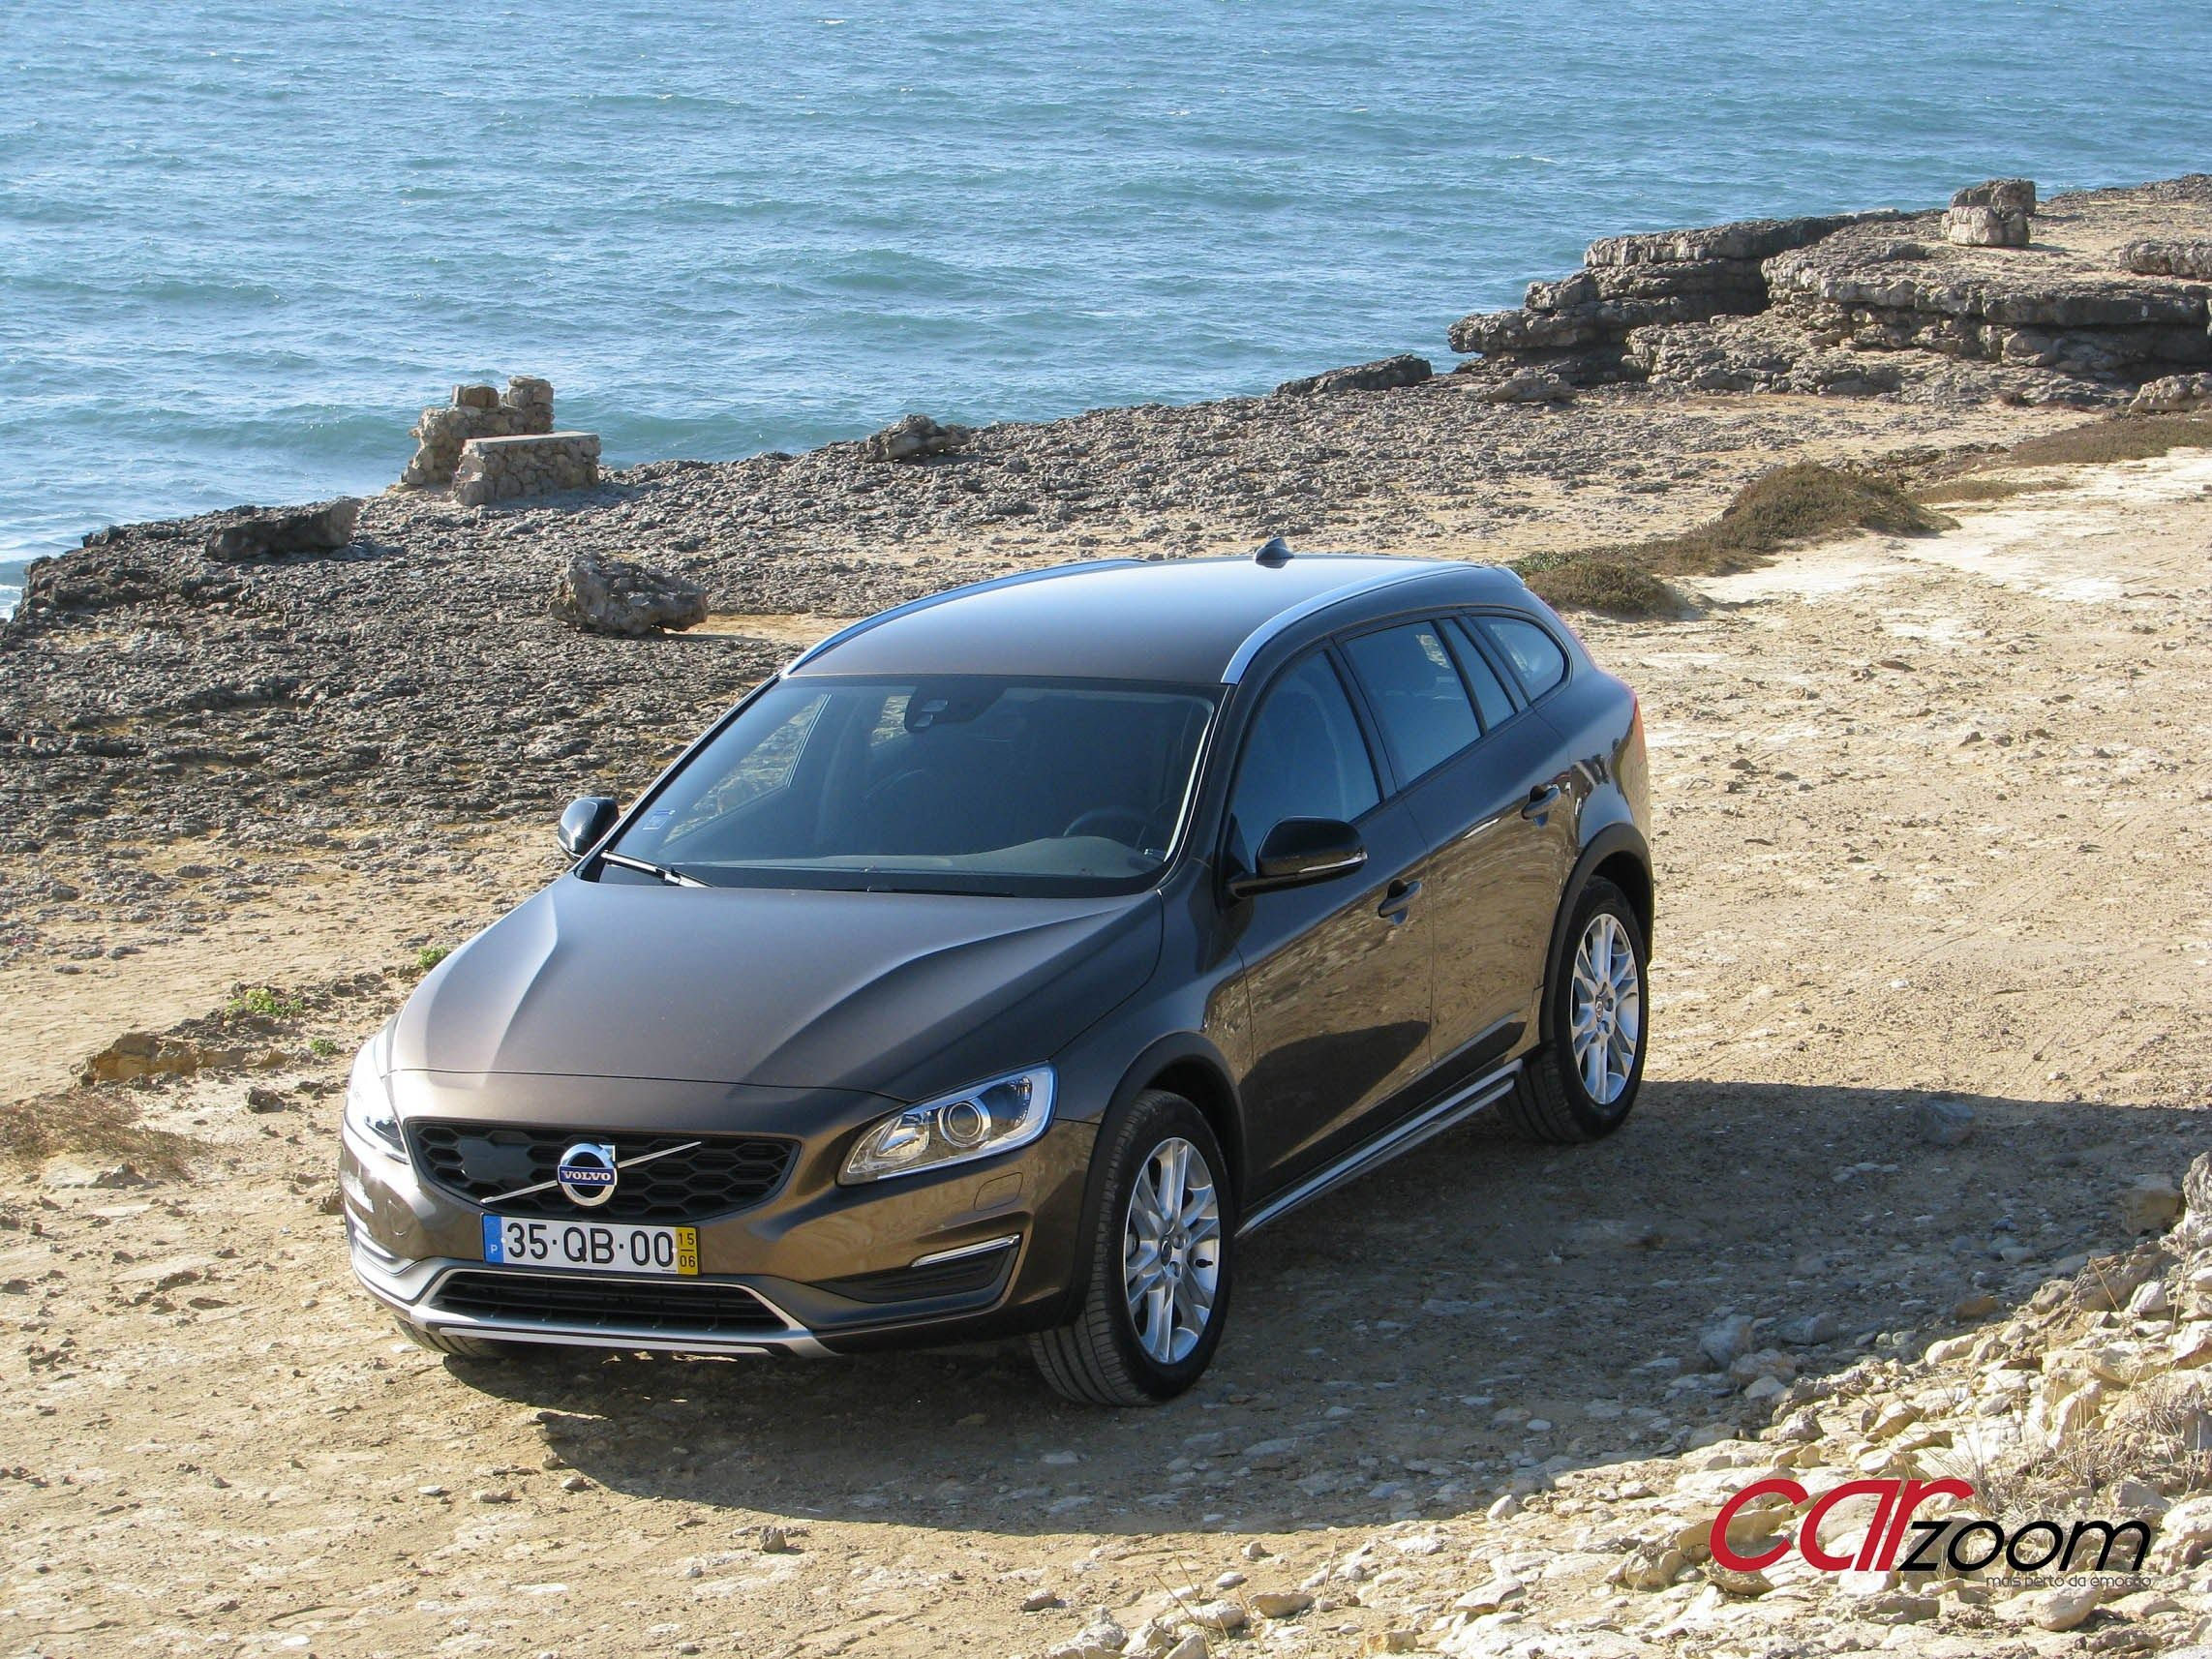 Volvo V60 D3 Cross Country: Um familiar aventureiro.